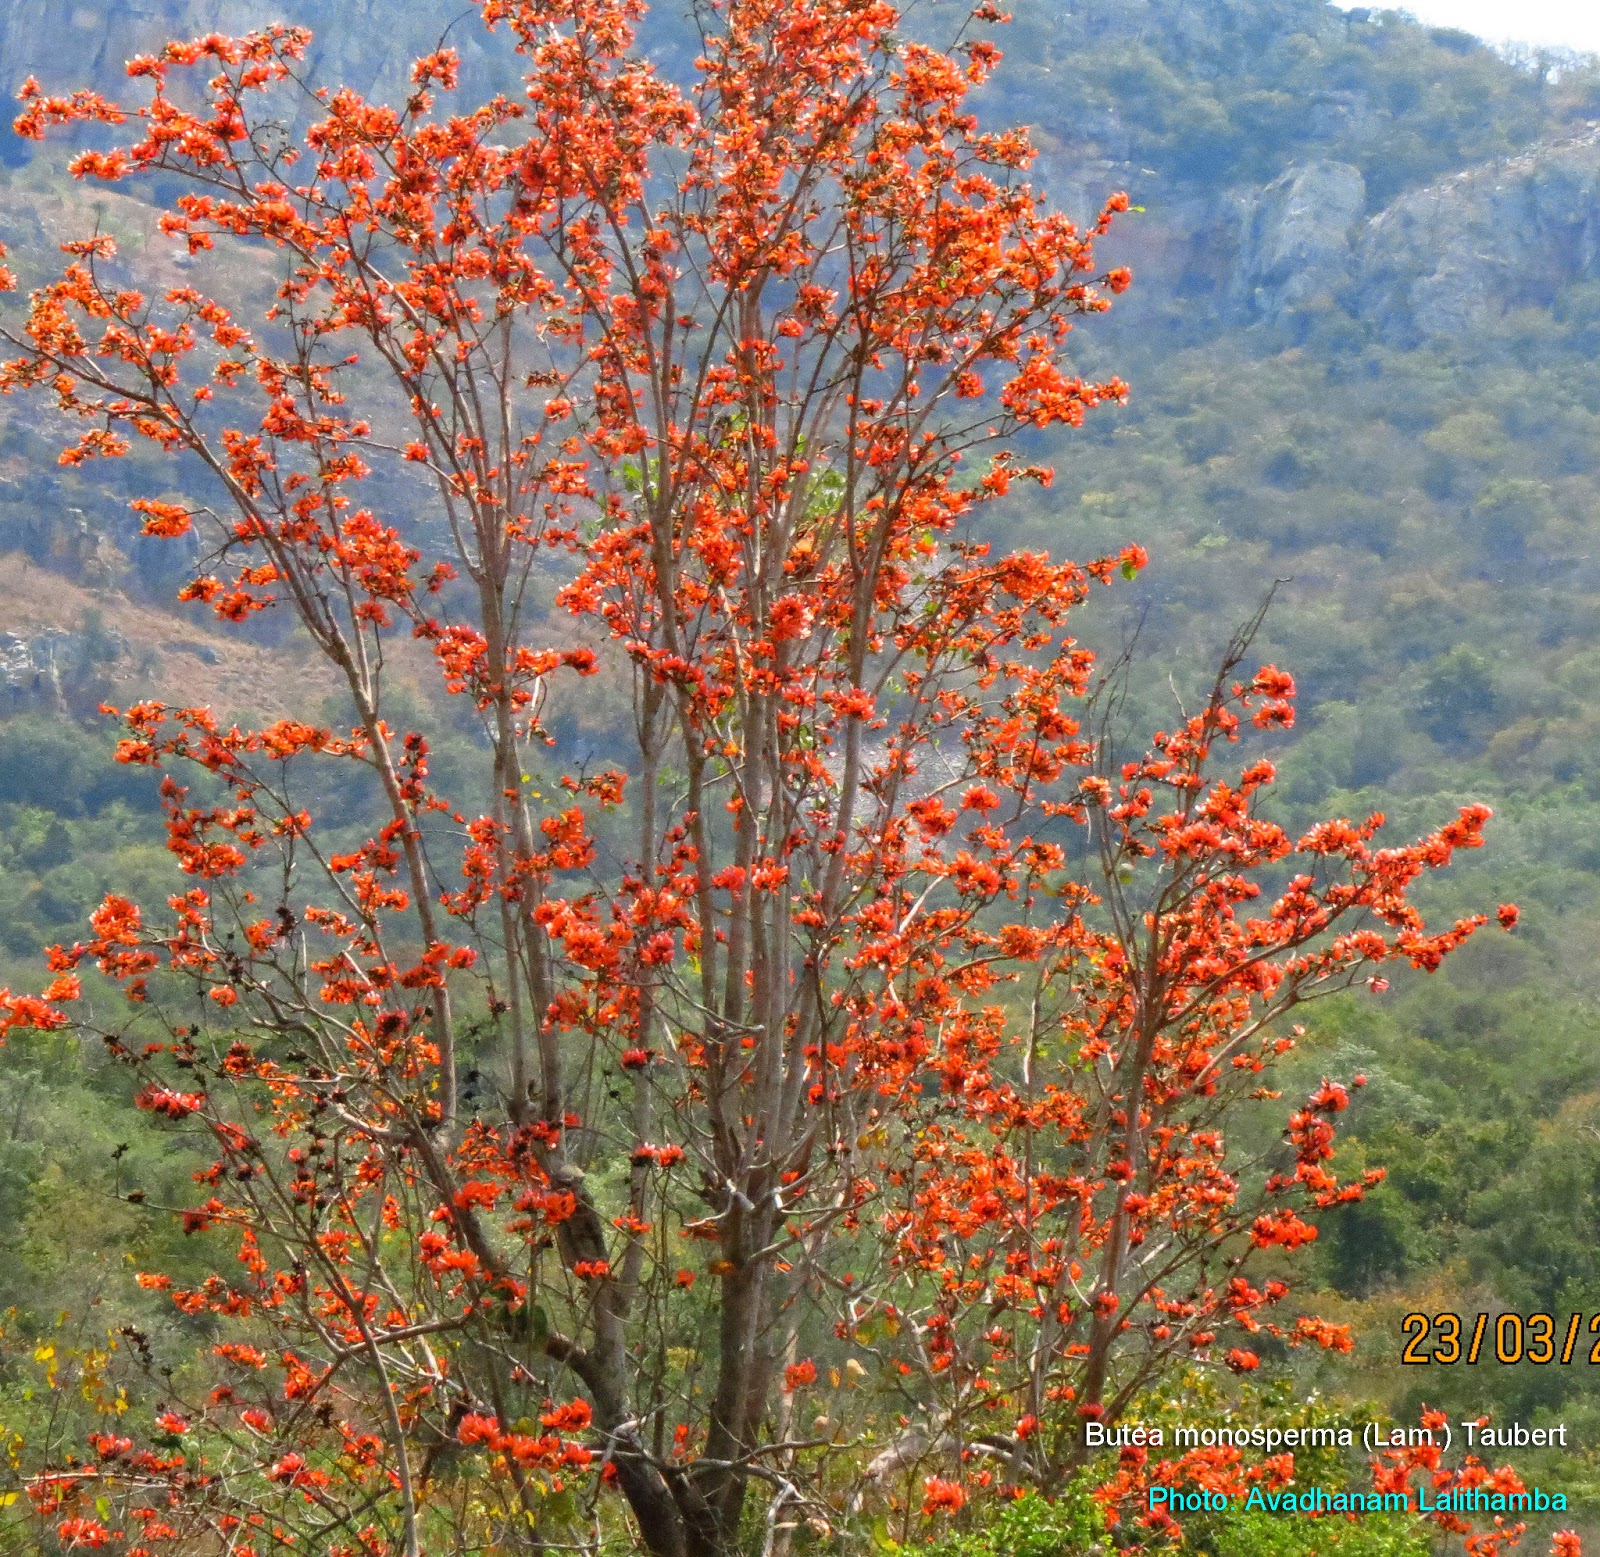 Butea monosperma - JungleKey.in Image